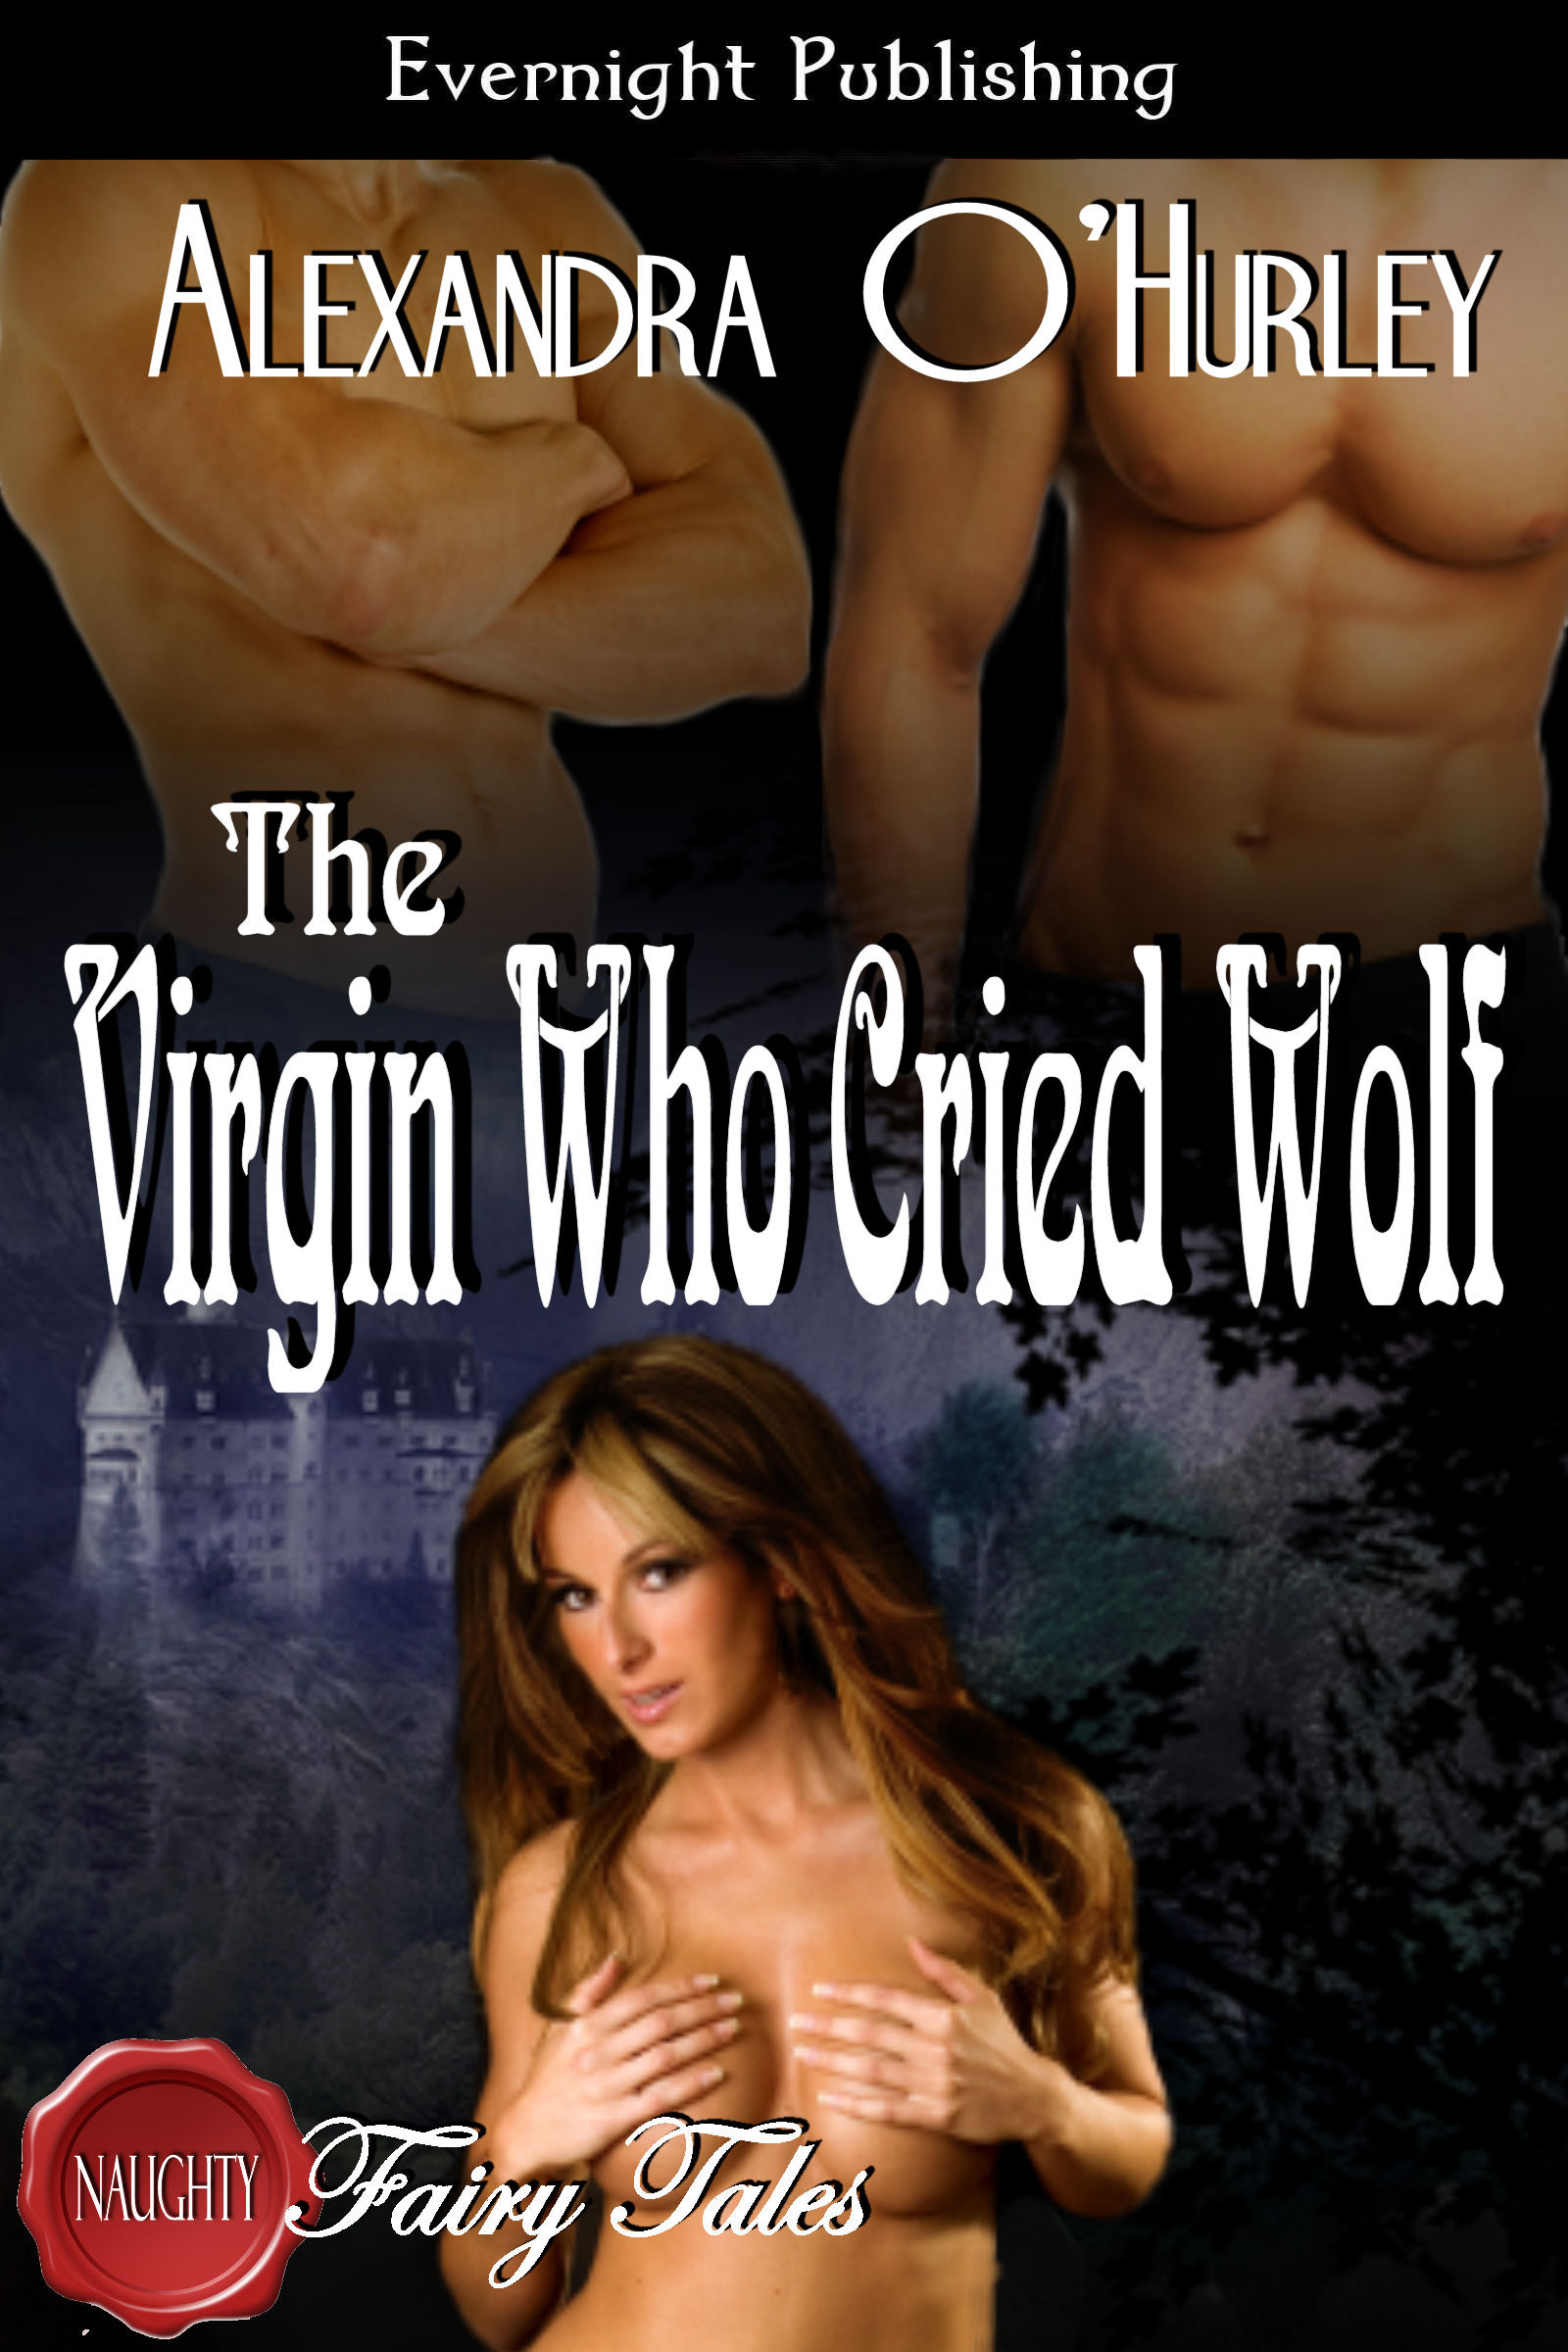 The Virgin Who Cried Wolf